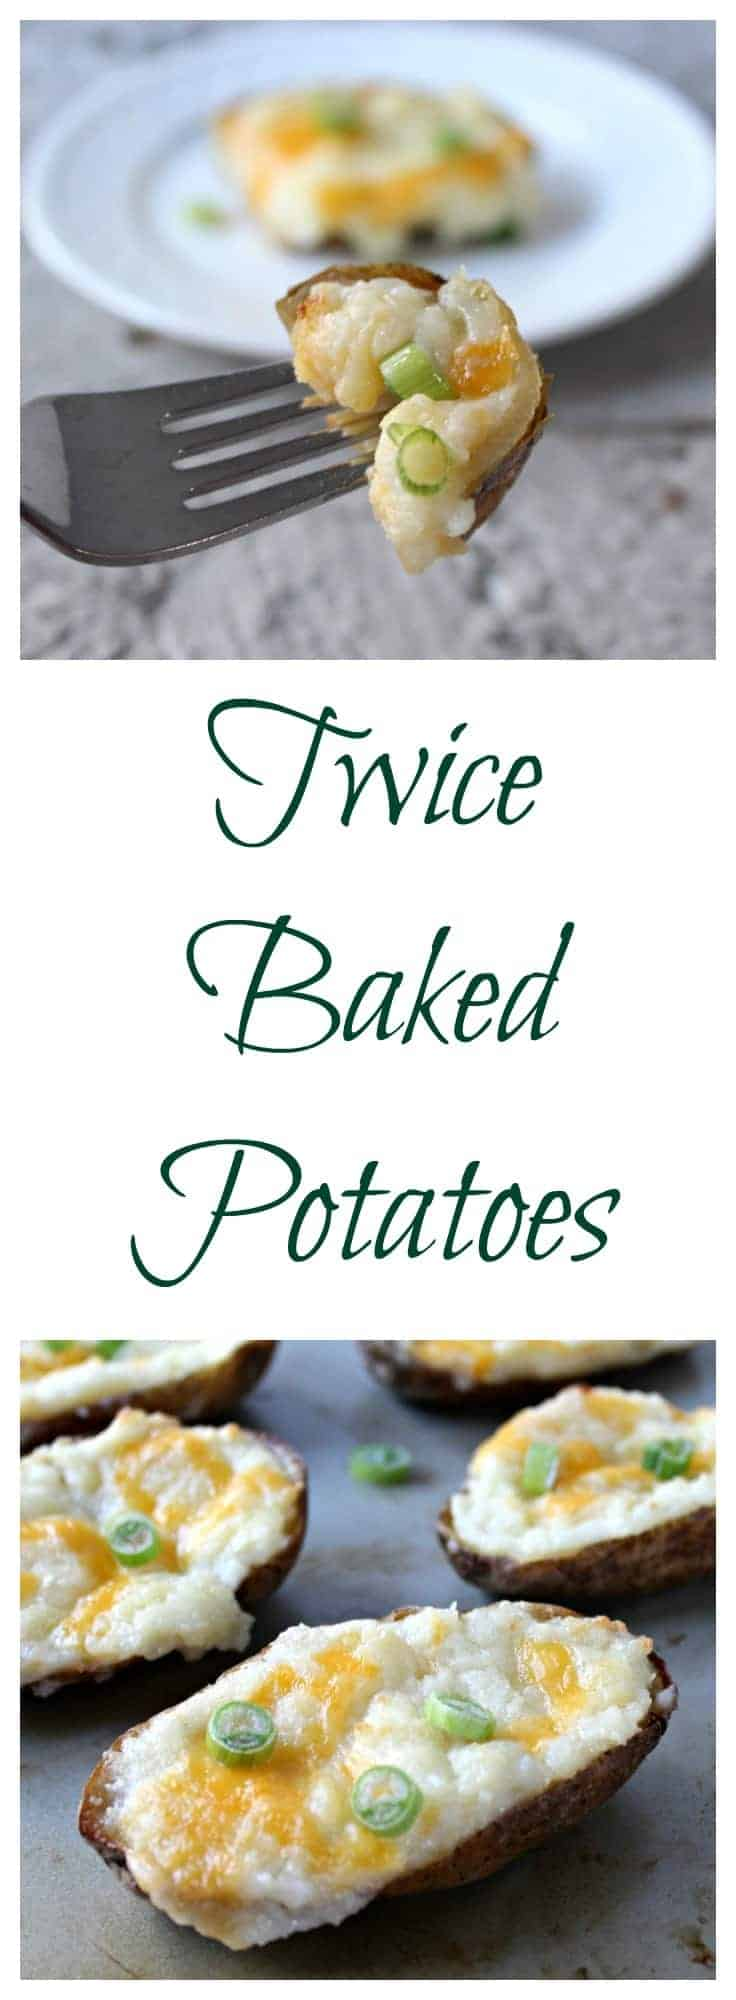 Twice baked potatoes filled with a cheesy filling.